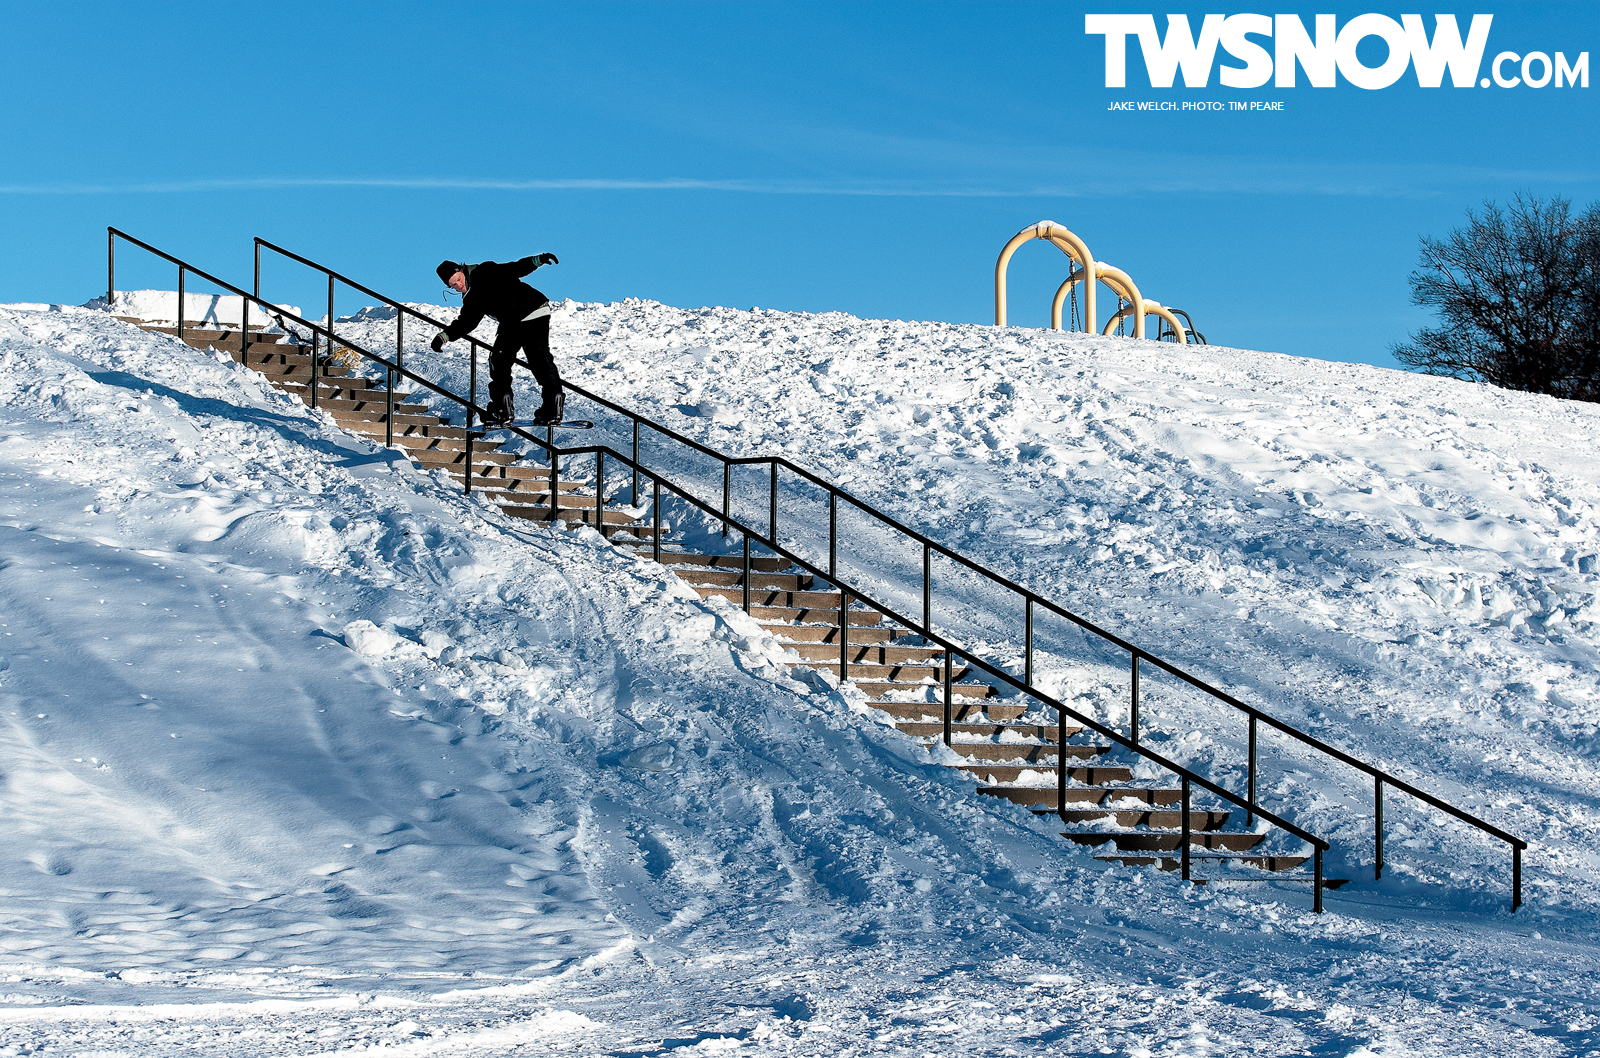 Wallpaper Wednesday Forever Forum TransWorld SNOWboarding Page 3 1600x1058